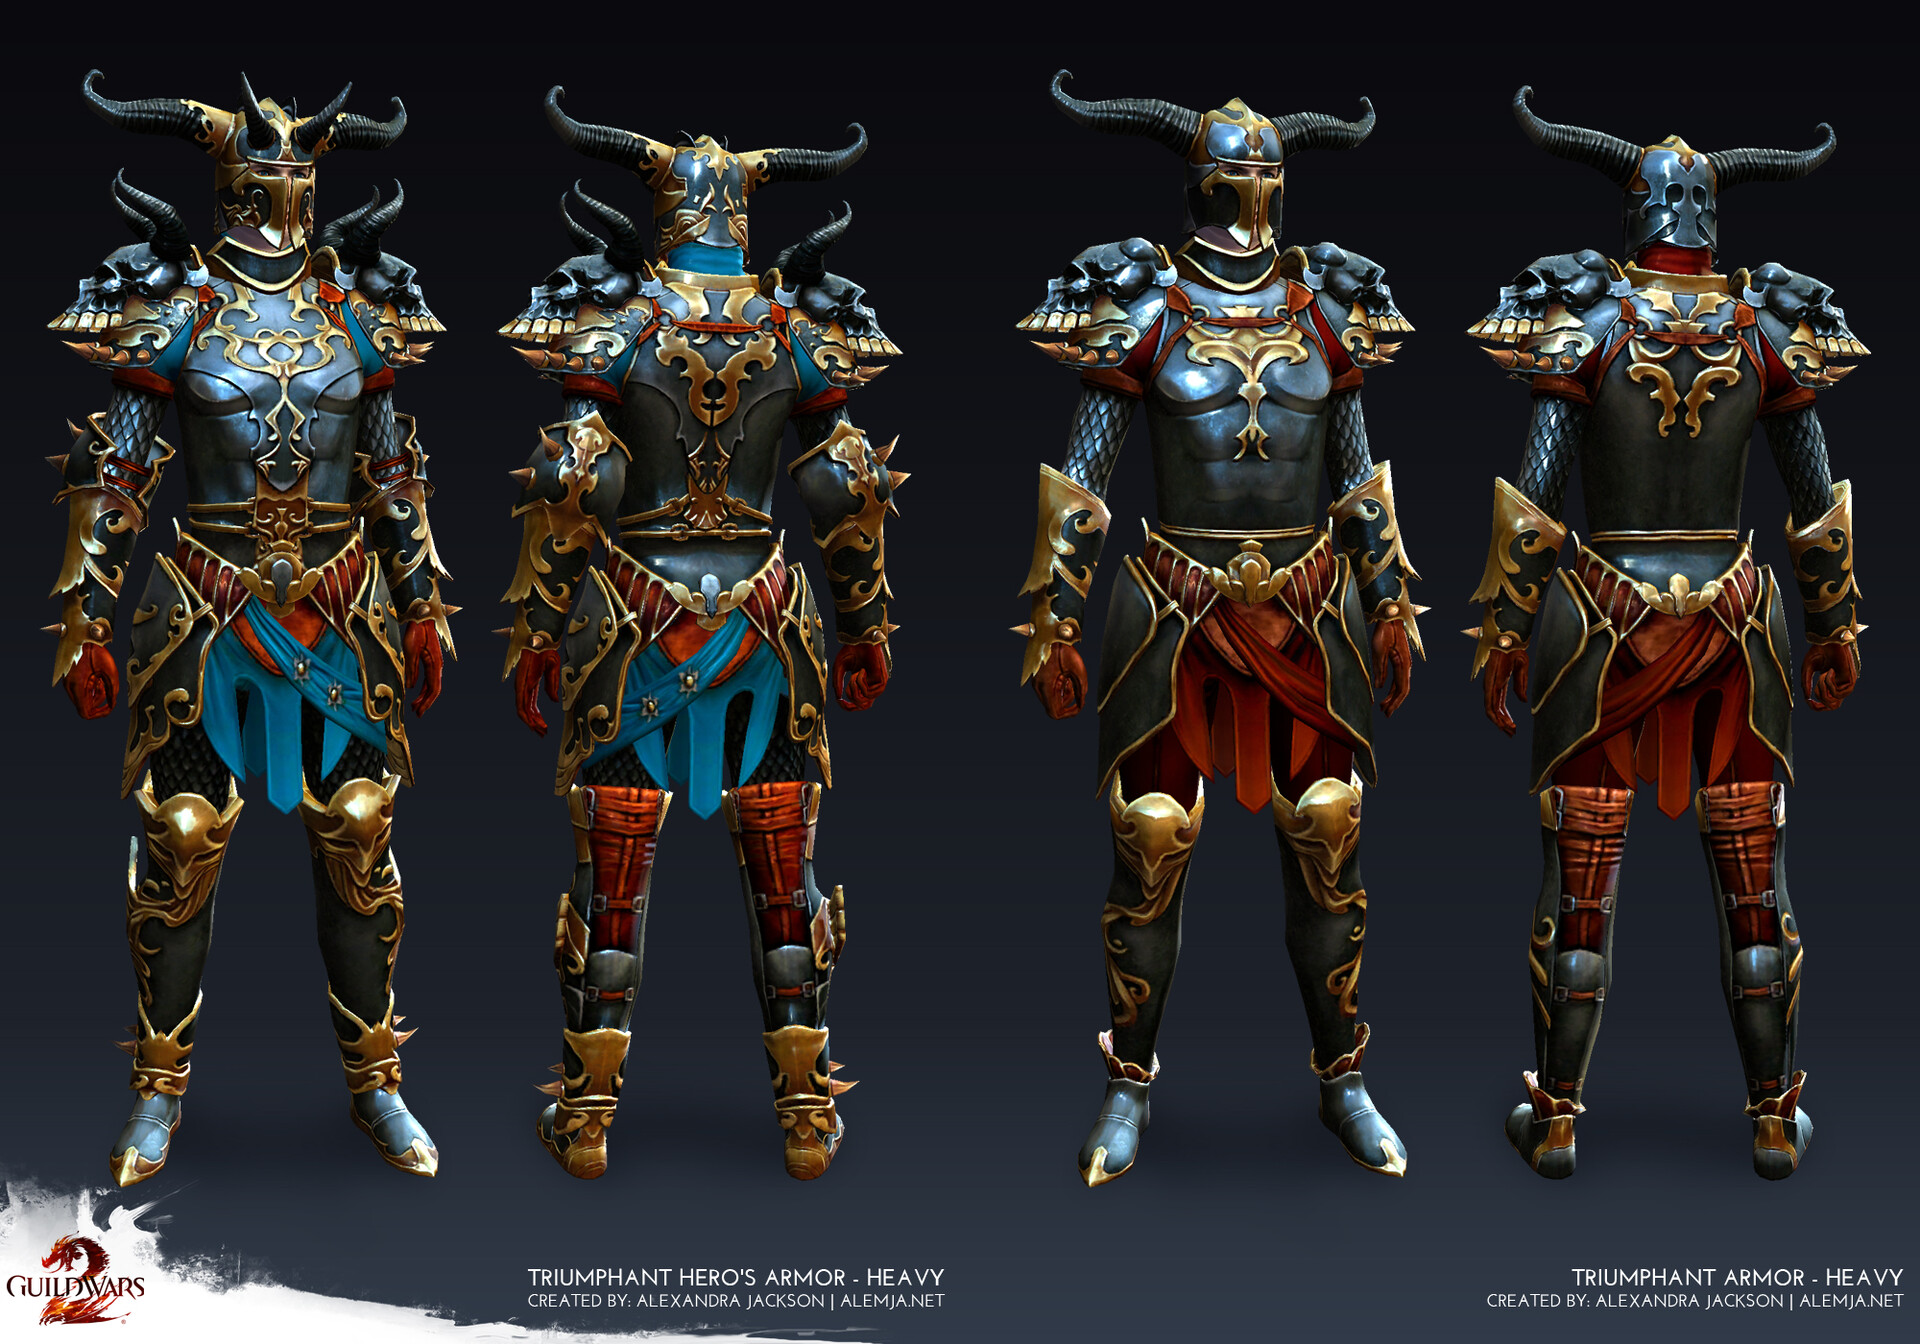 Worked on the armor game ready model and texures. I made sure as much as possible was reused as possible between the 2 tiers. This set was added as a reward tier for the in-game mode World vs World